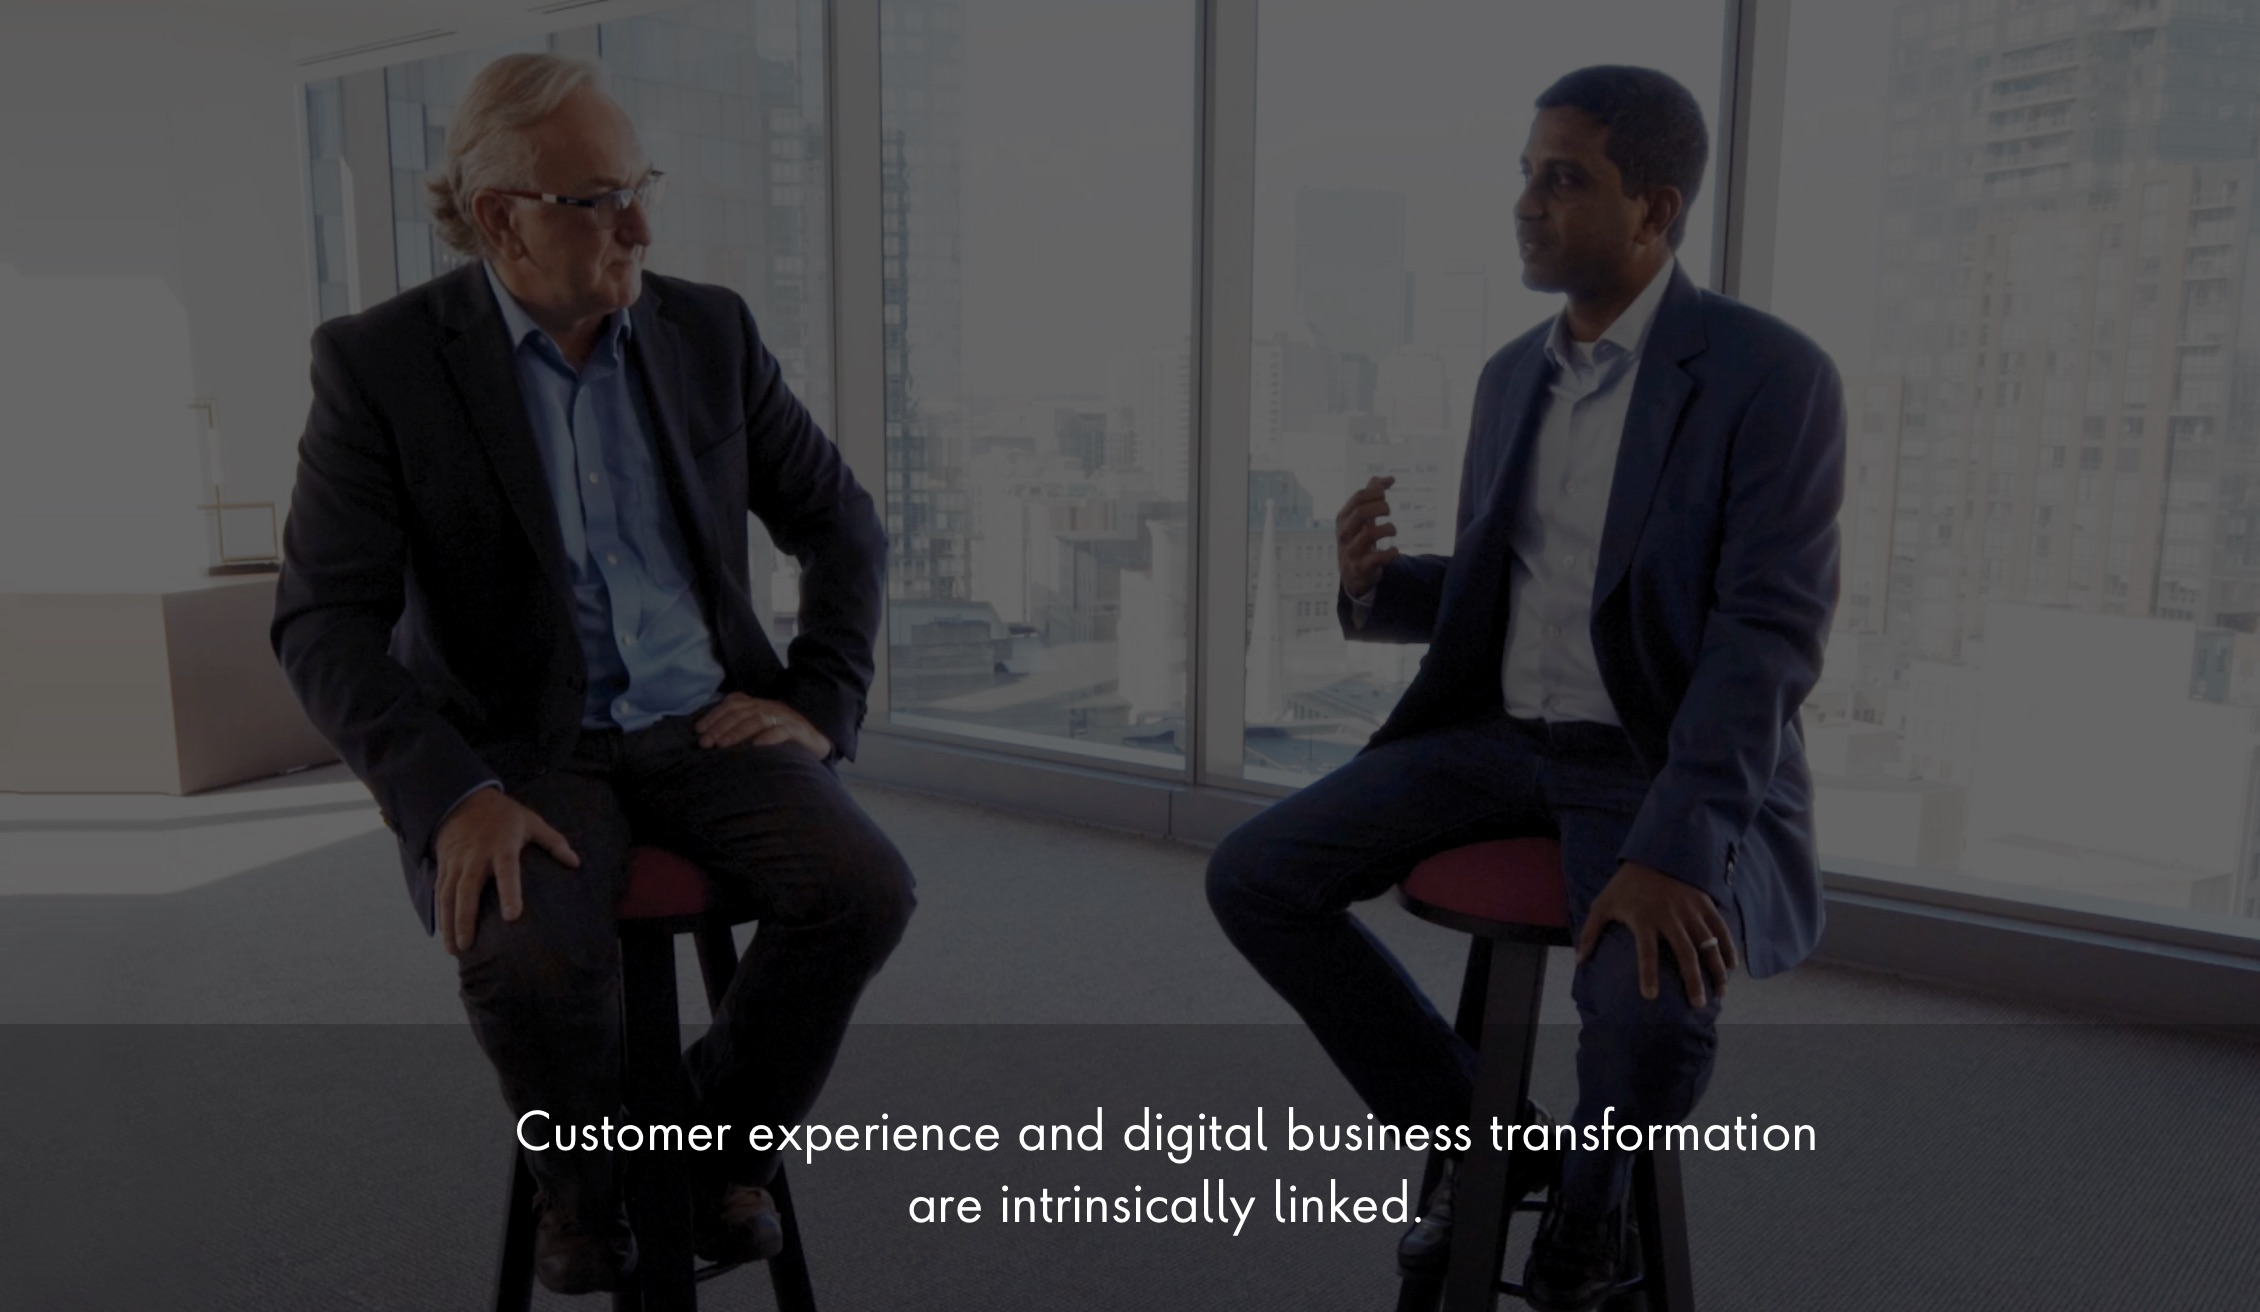 Customer experience and digital business transformation are intrinsically linked.